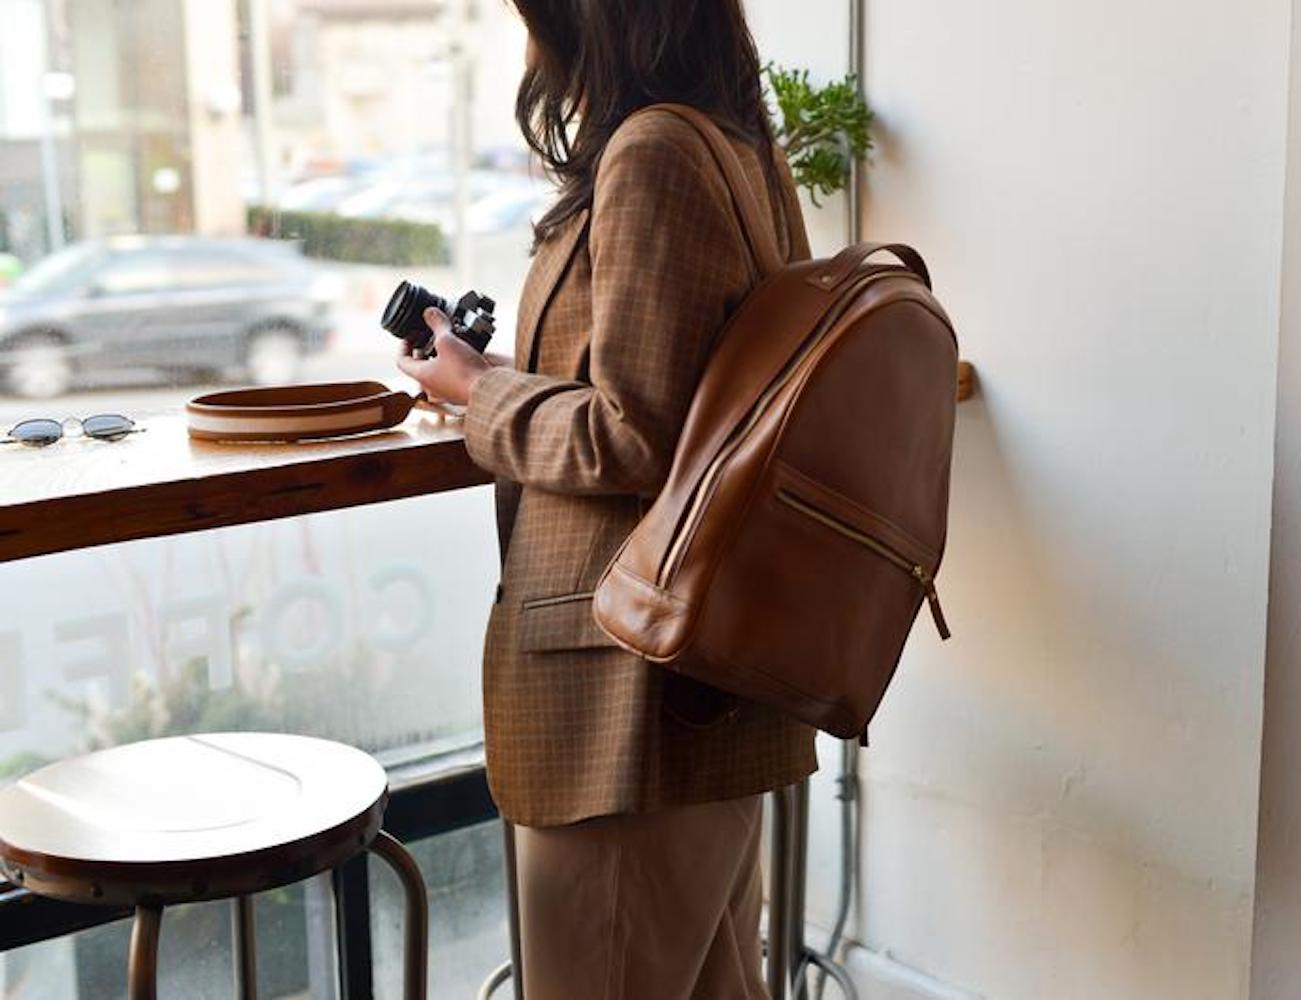 Handmade Women's Leather Travel Backpack holds all your trip essentials